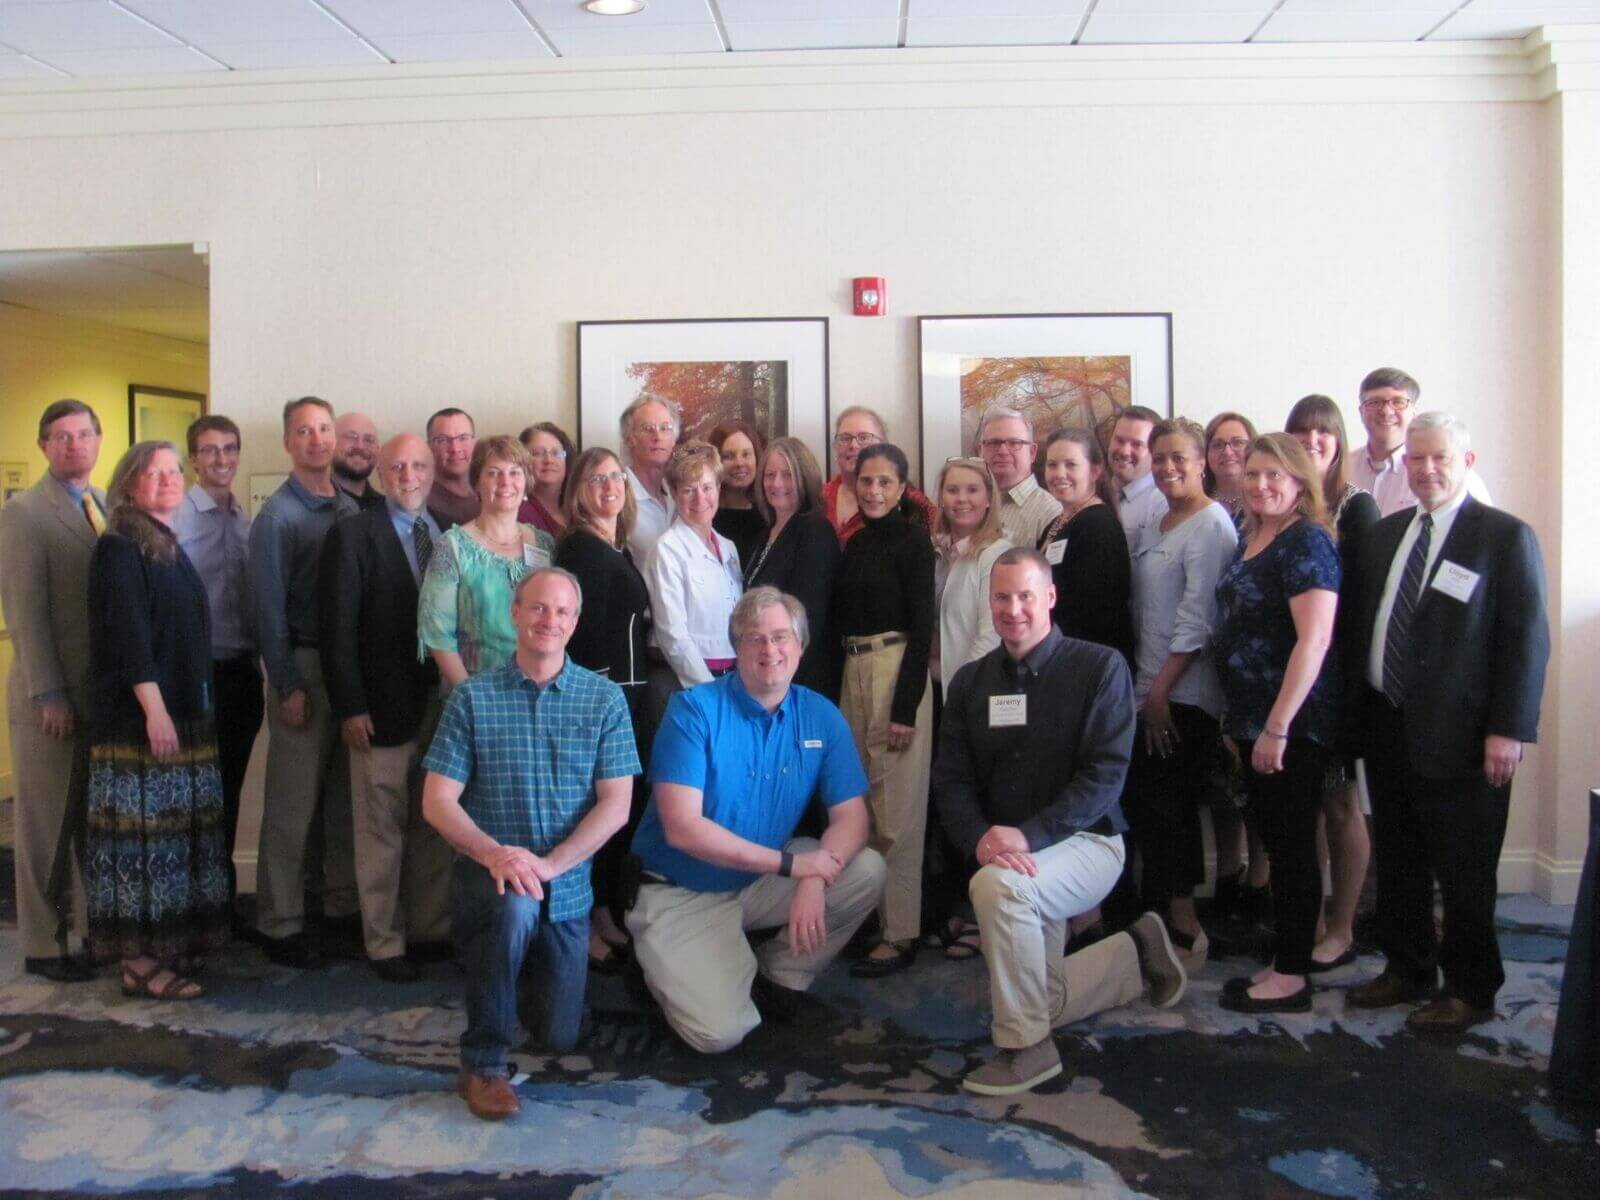 Group photo of conference attendees.